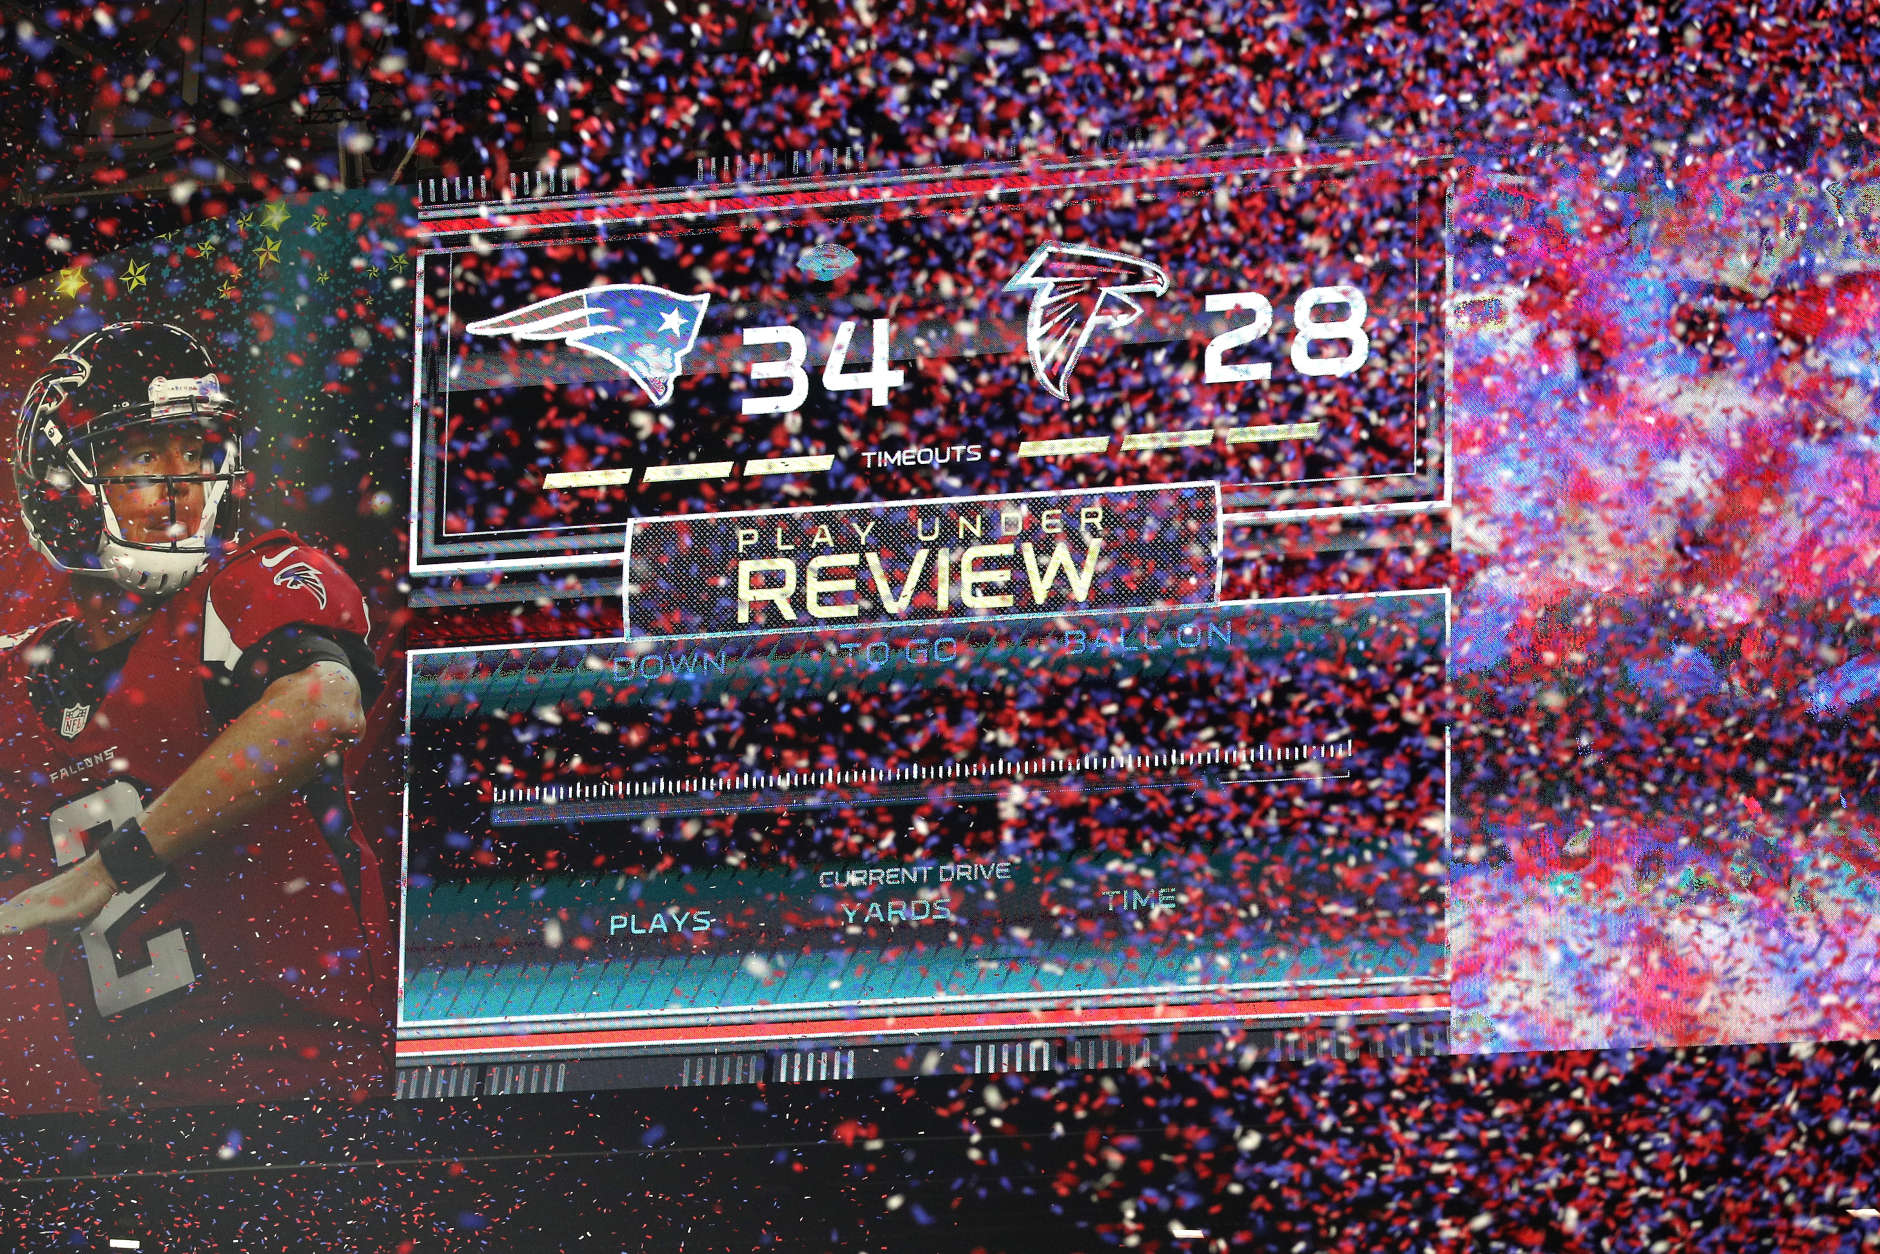 HOUSTON, TX - FEBRUARY 05:  Confetti falls after the Patriots defeat the Falcons 34-28 in ovetime during Super Bowl 51 at NRG Stadium on February 5, 2017 in Houston, Texas.  (Photo by Patrick Smith/Getty Images)